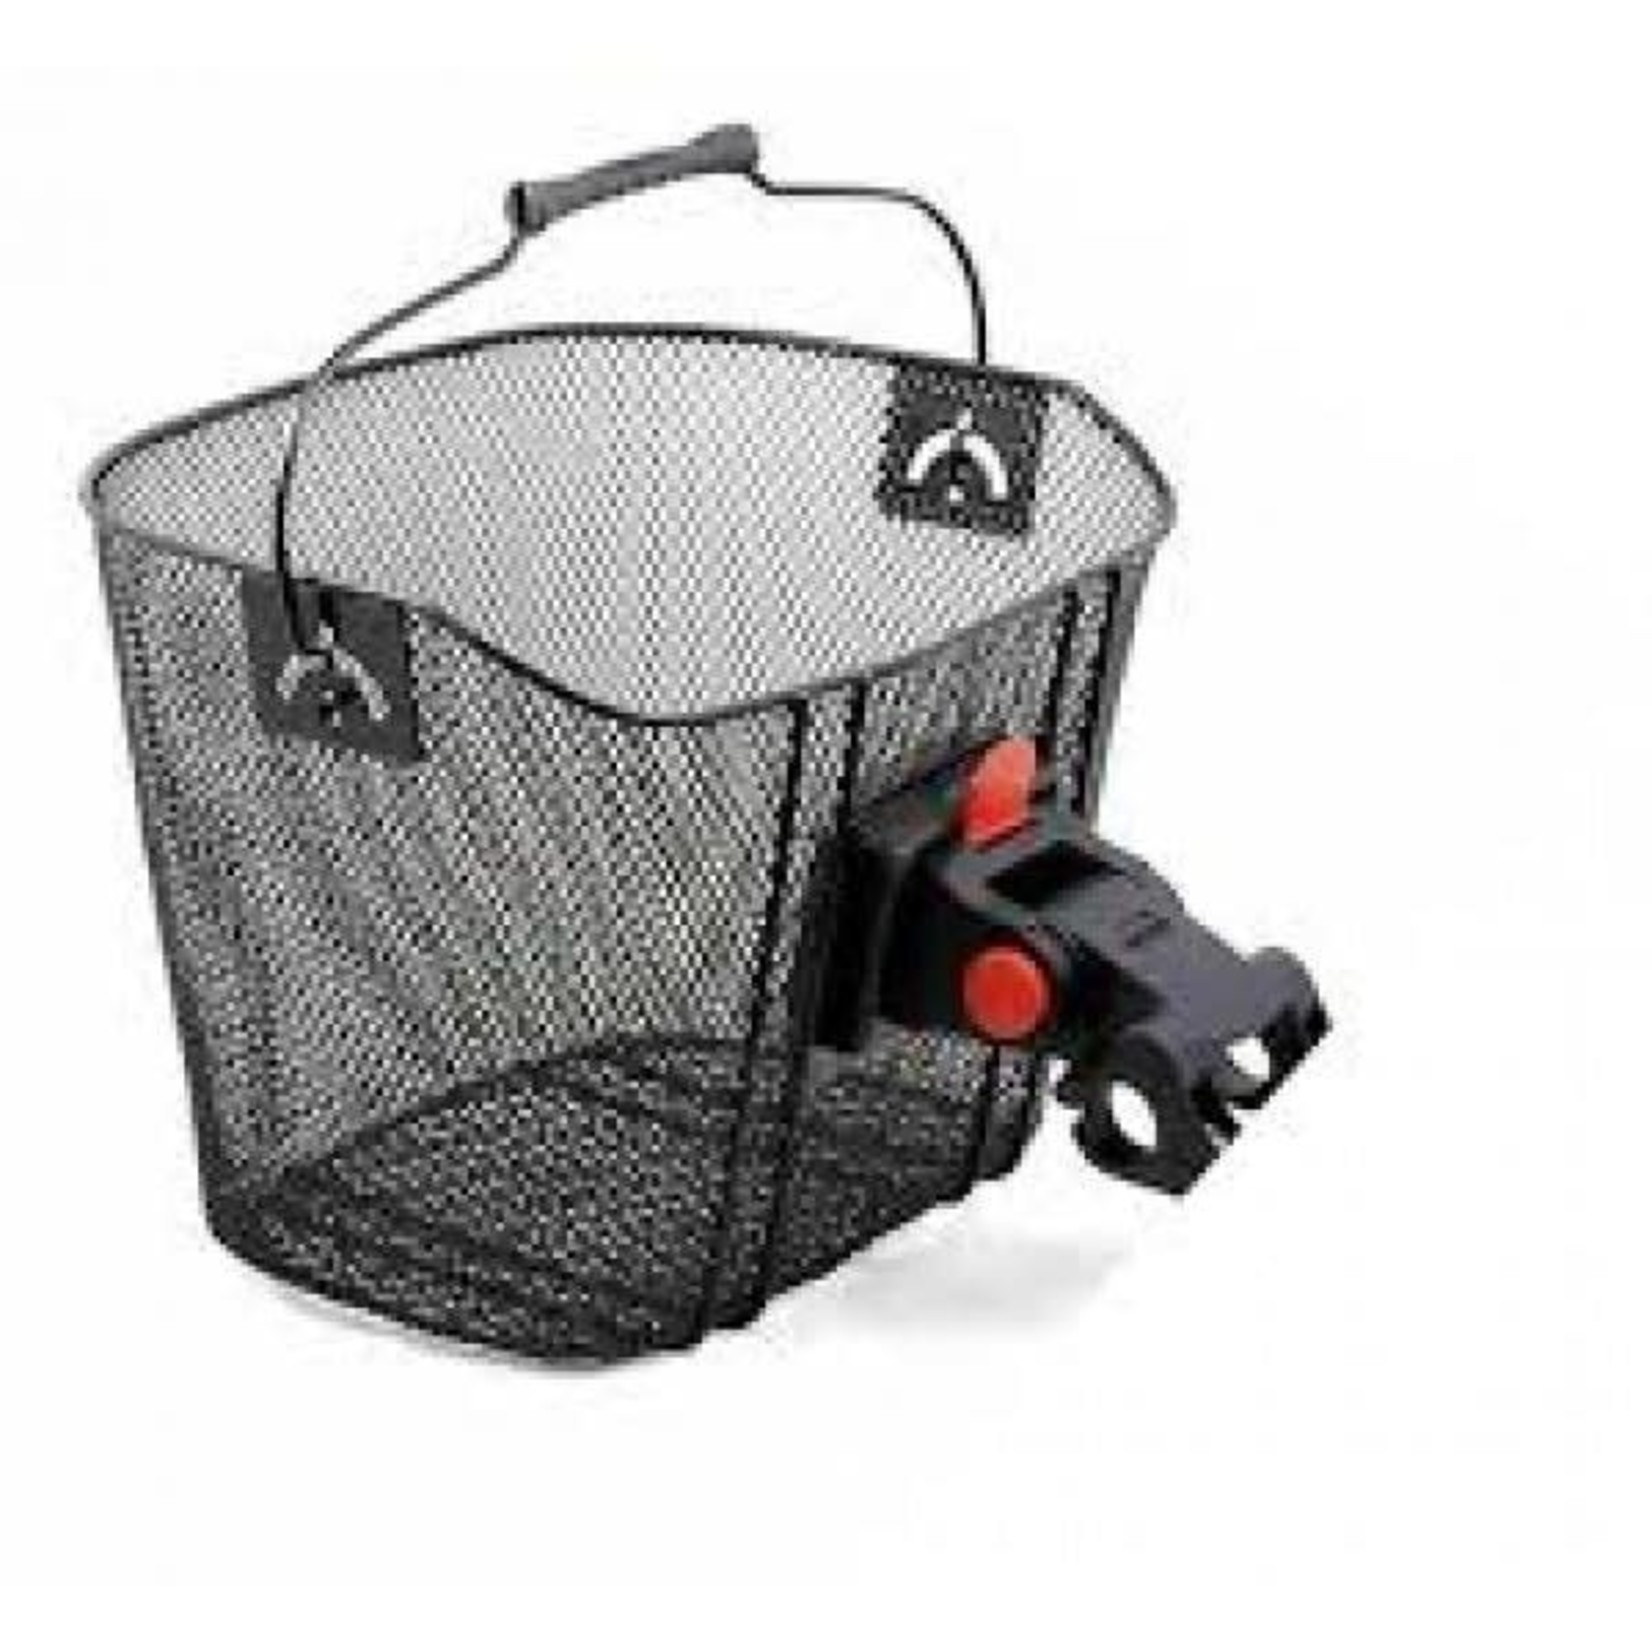 Maxx Pro Mesh Front Bicycle Basket QR 31.8